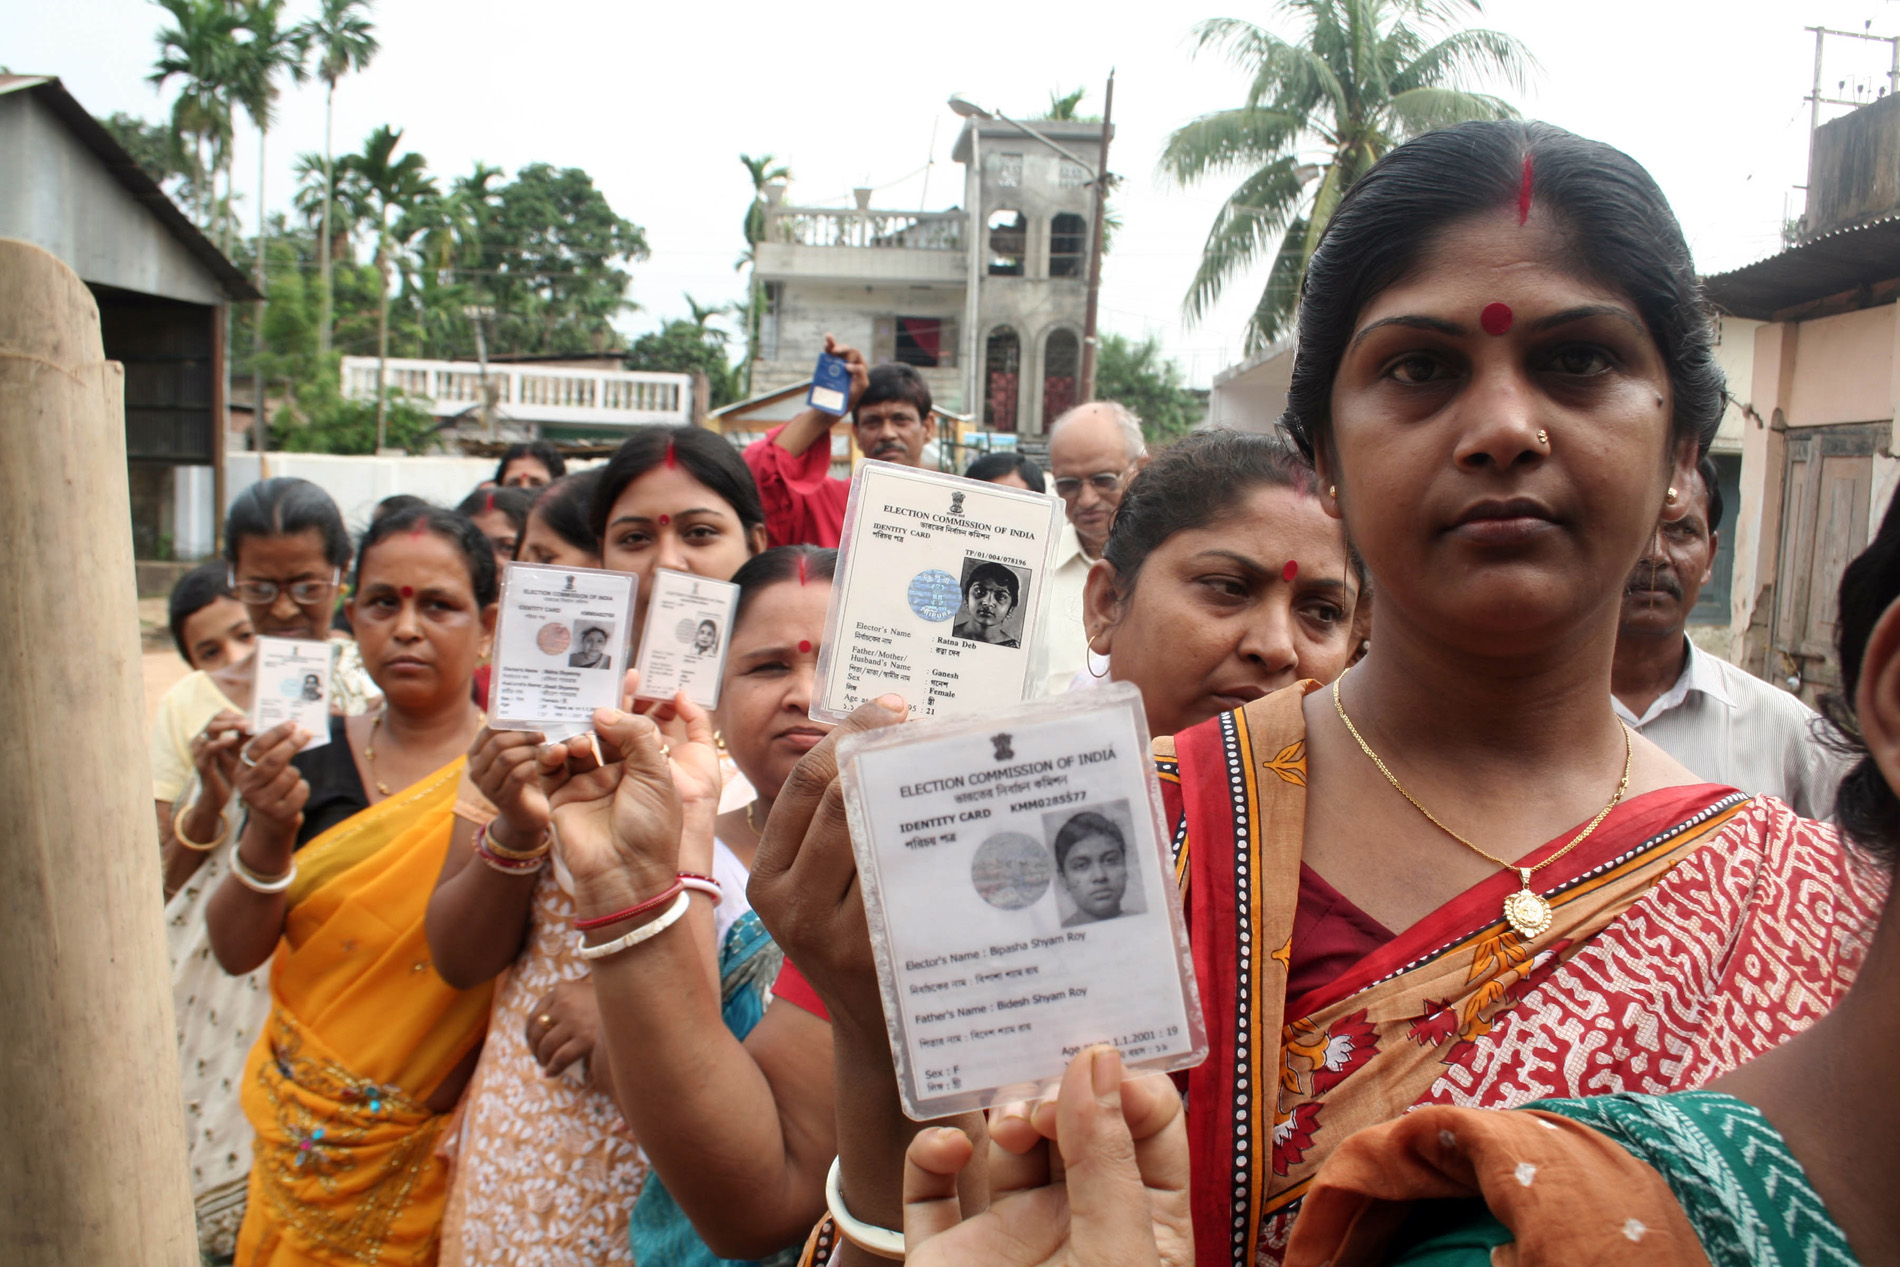 elections in india Indian elections news october 25, 2013: election commission of india brings social media into model code of conduct september 7, 2013: election commission of india.